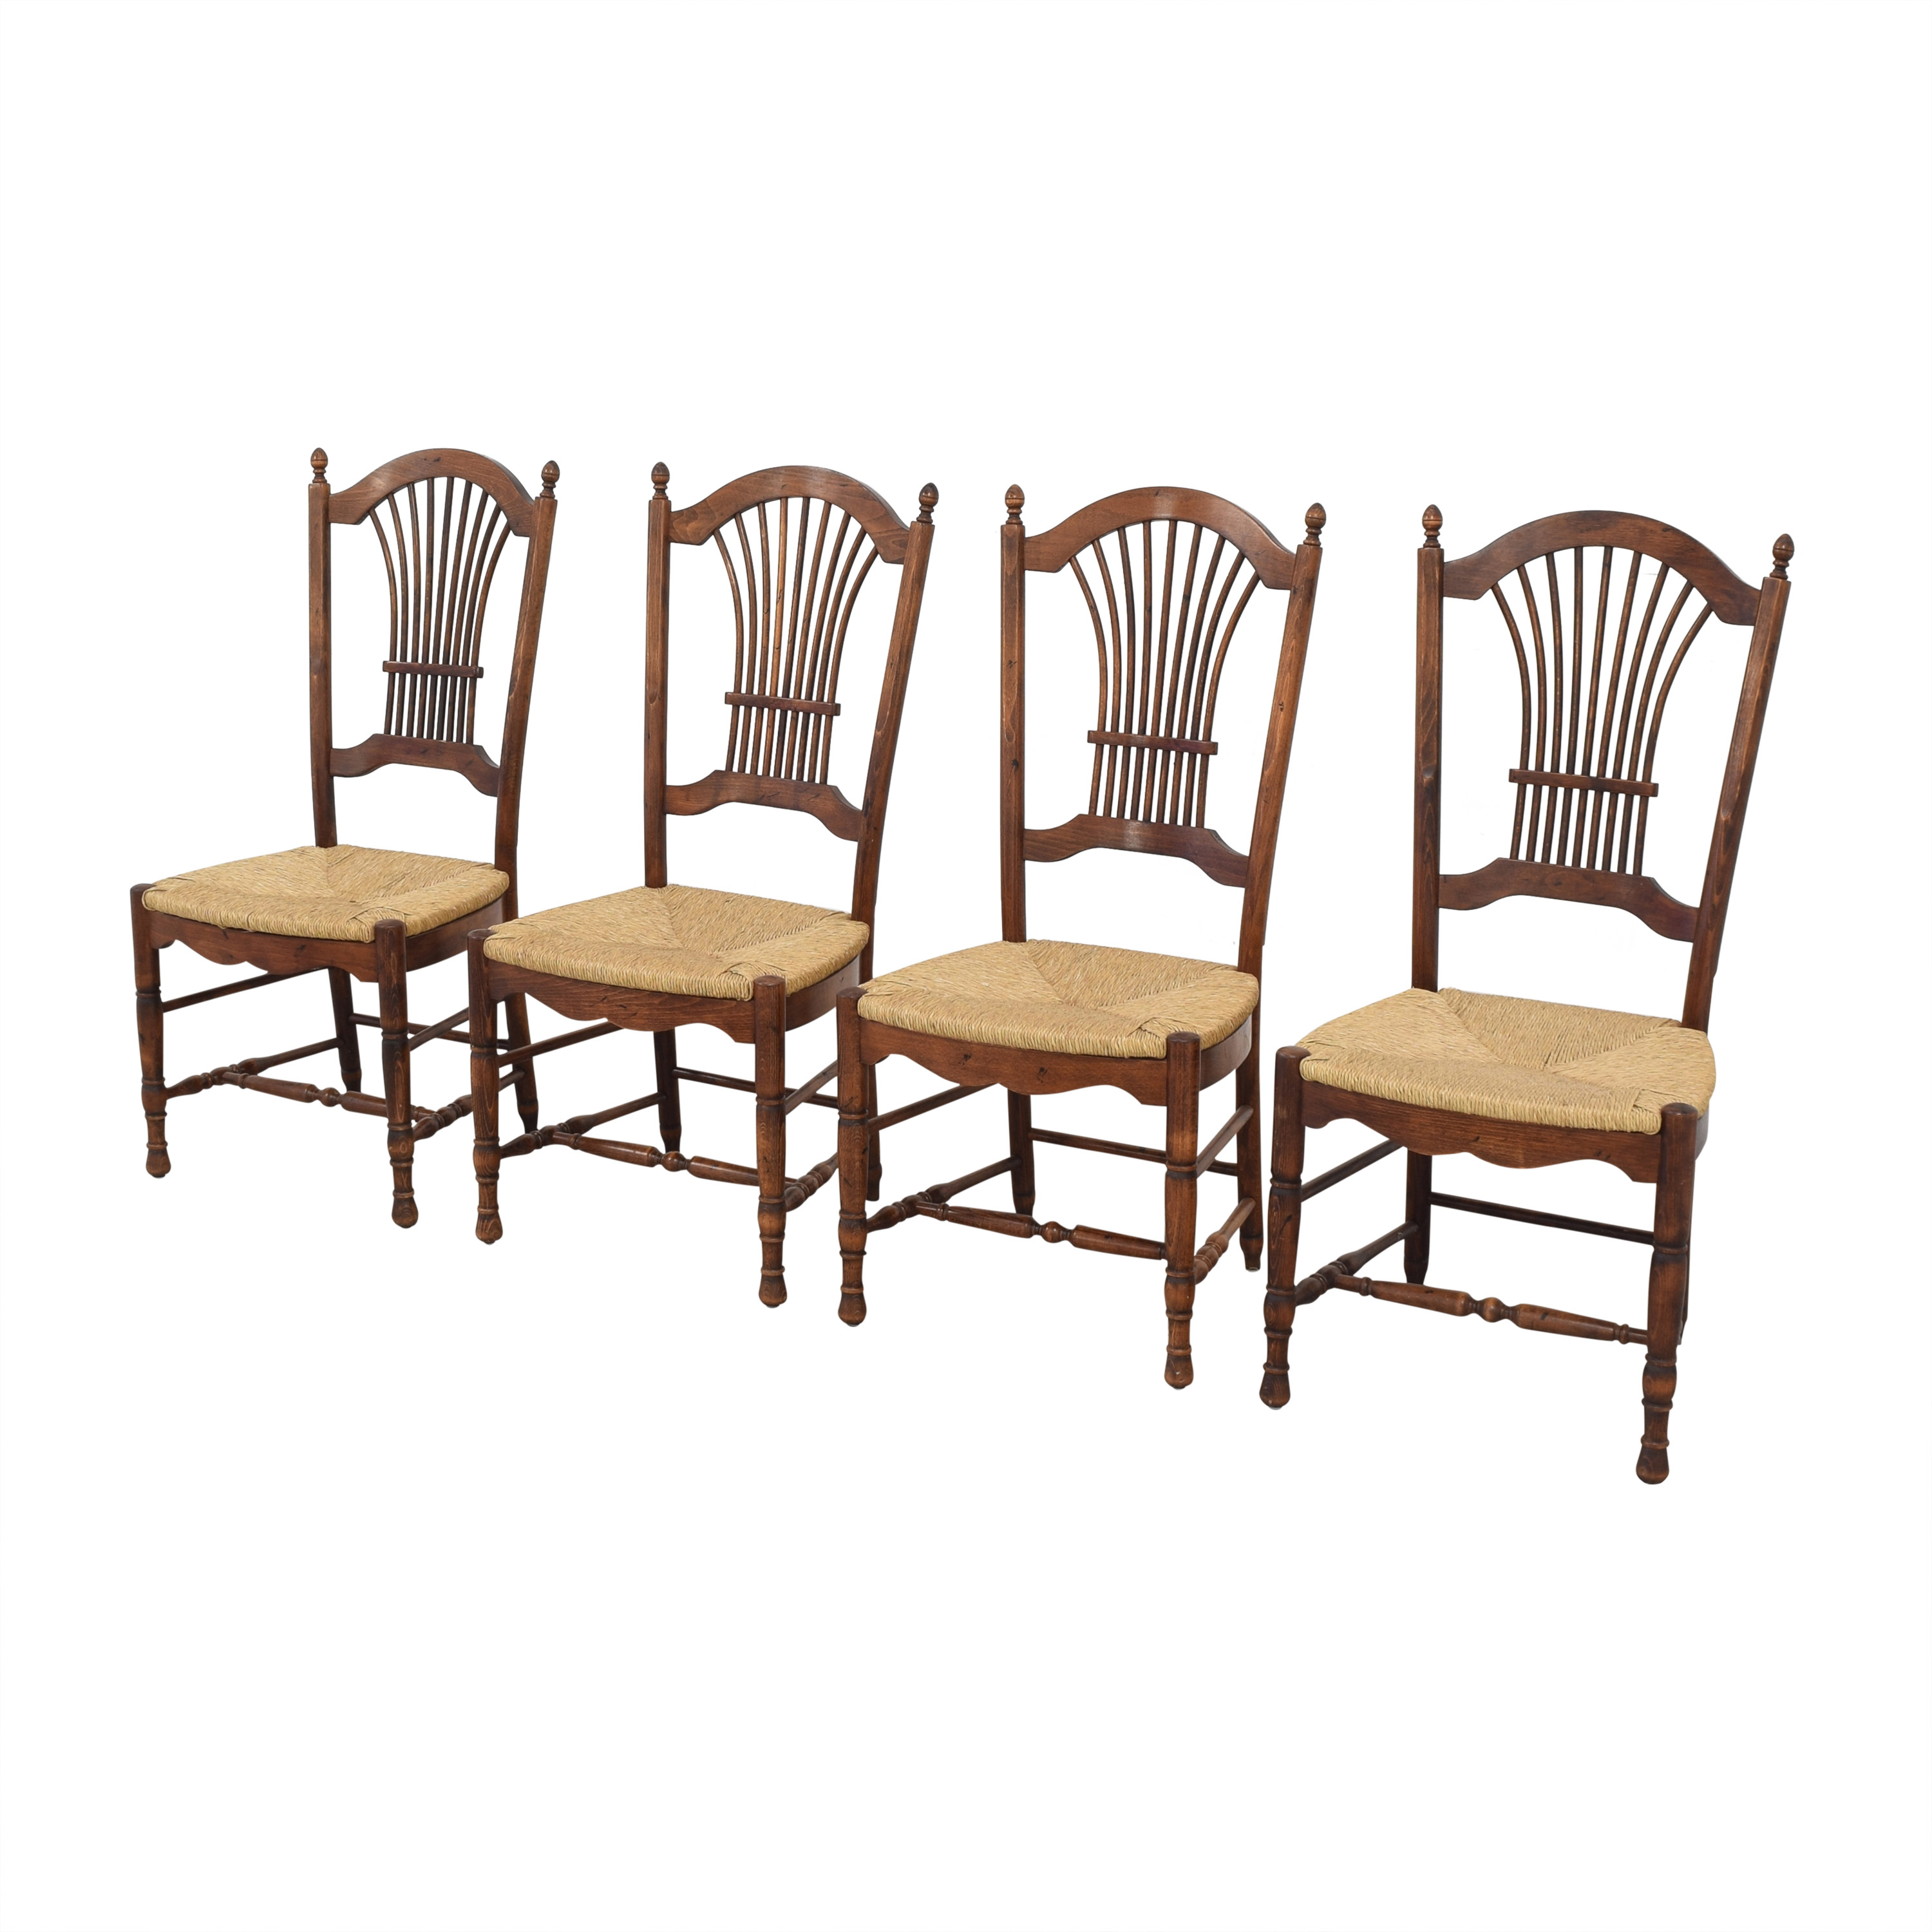 Cane Seat Dining Chairs / Chairs